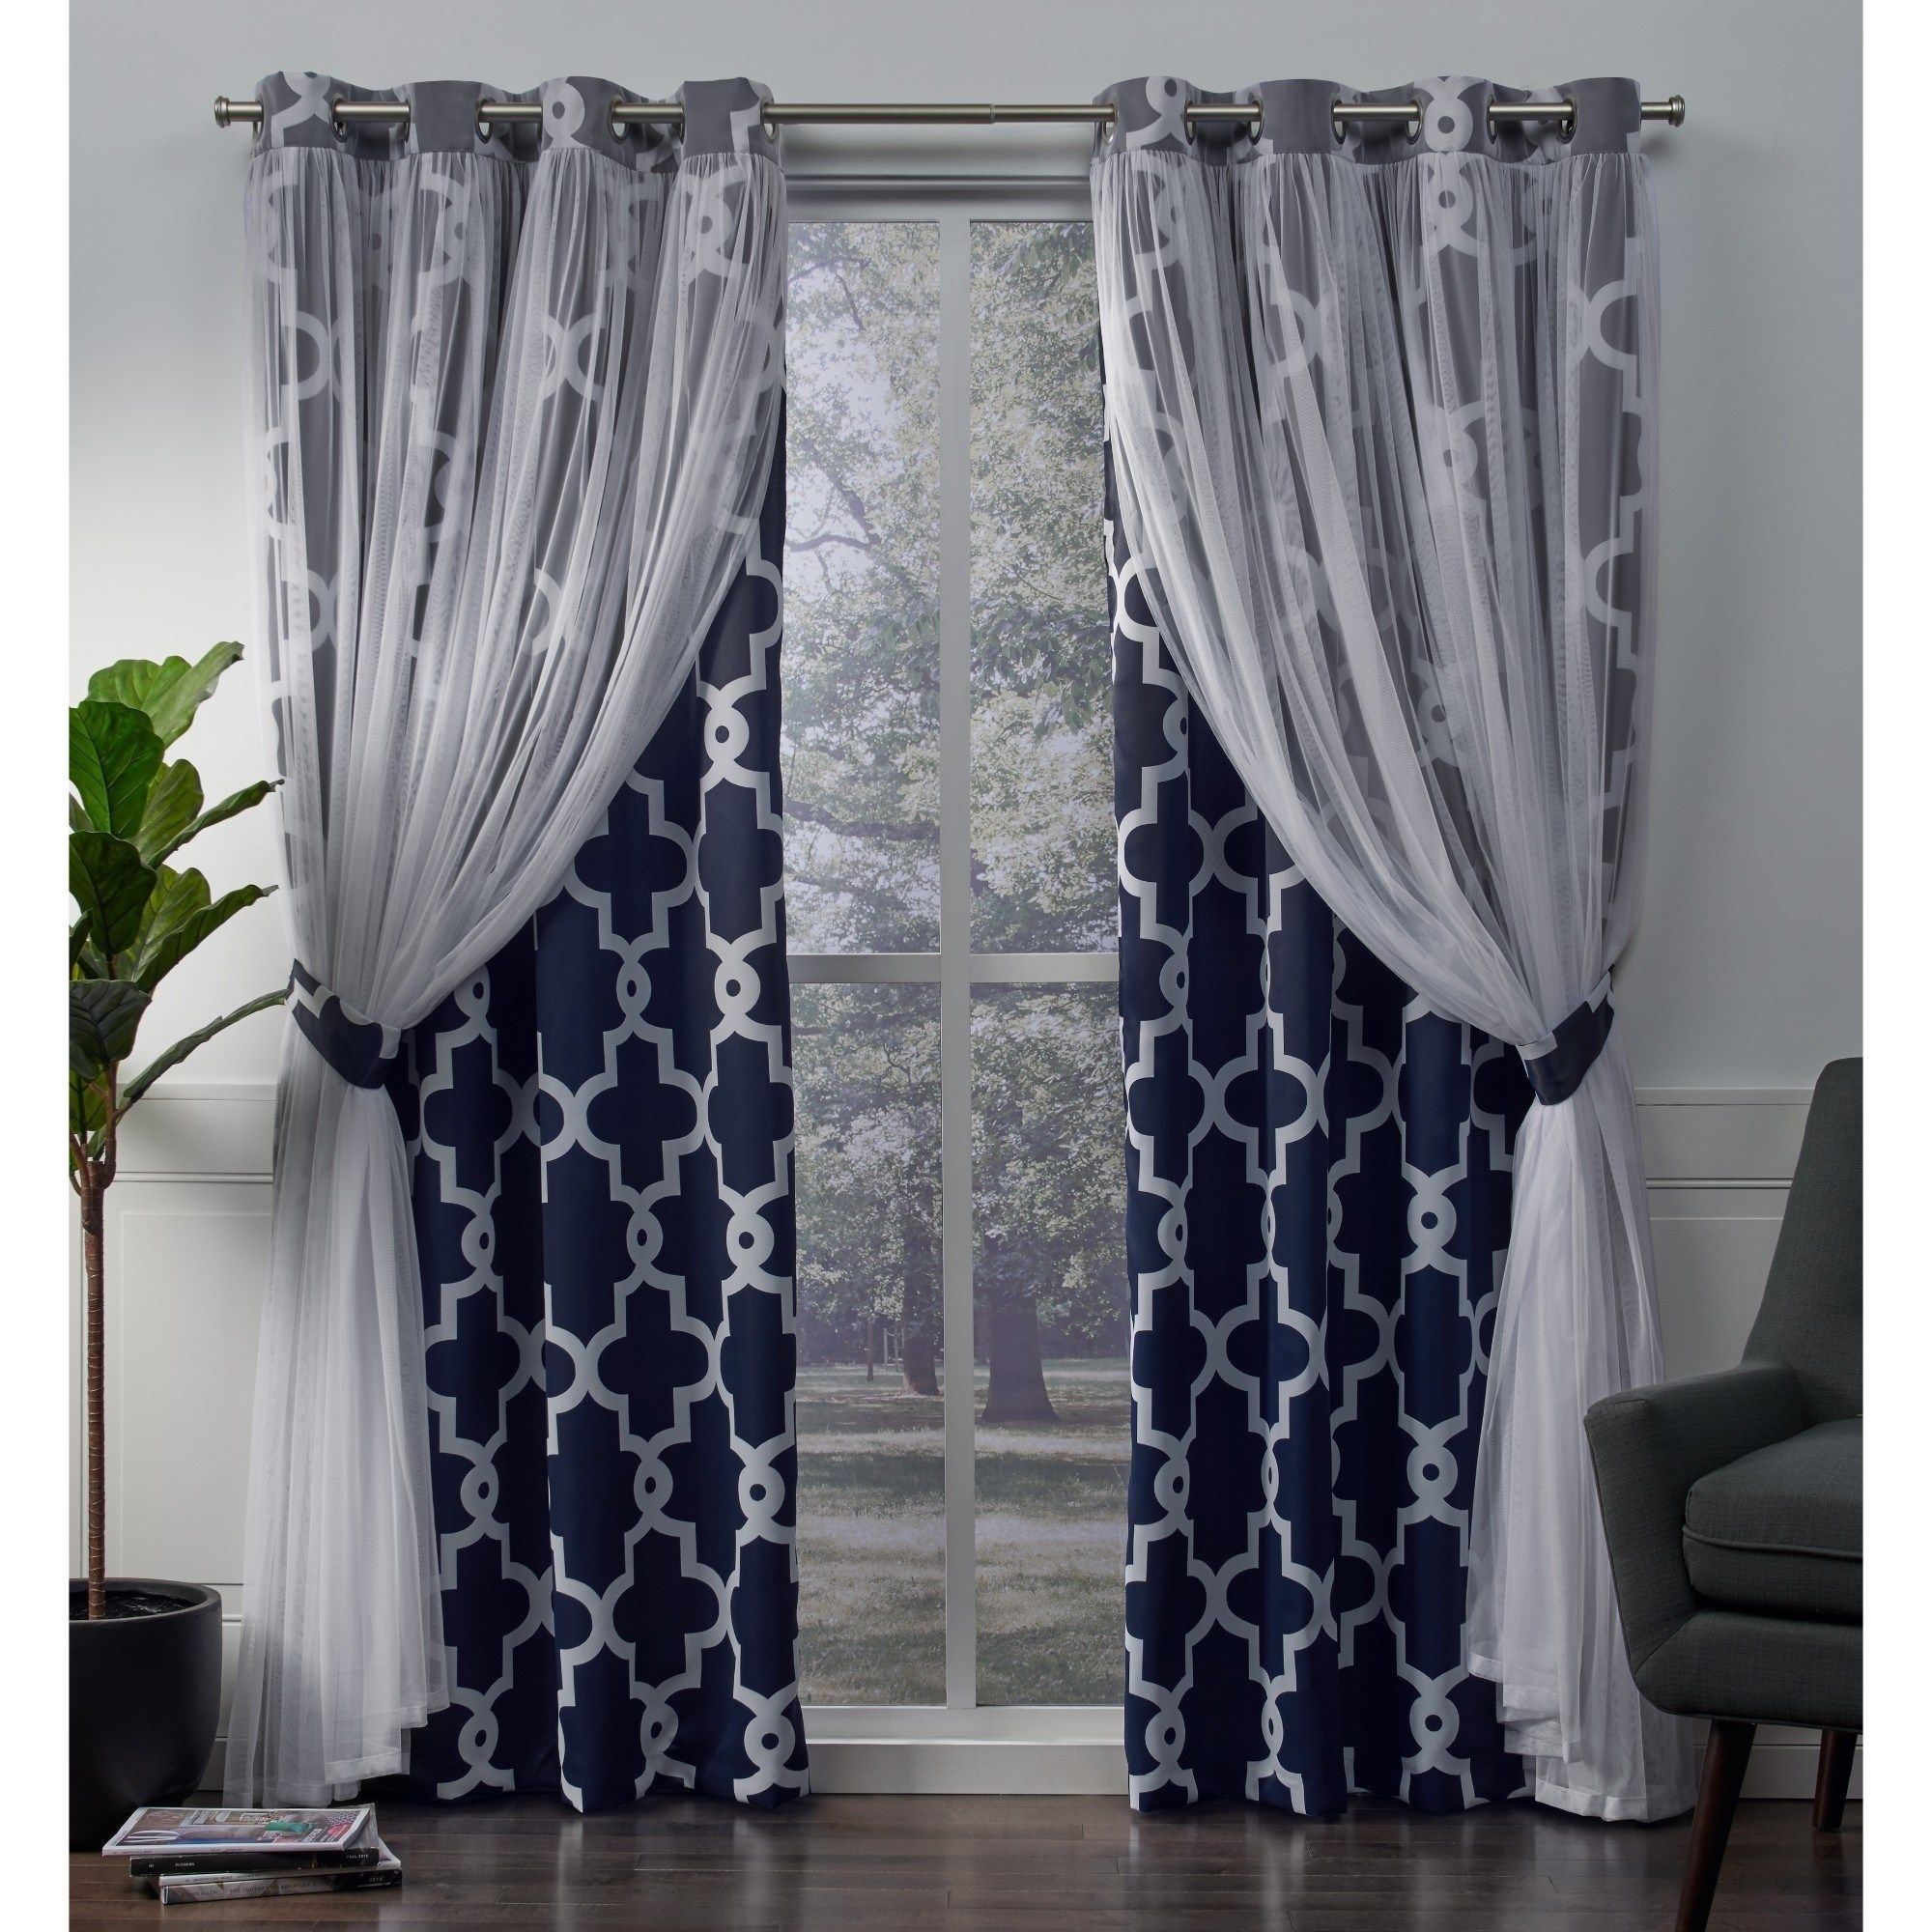 Ati Home Alegra Thermal Woven Blackout Grommet Top Curtain Panel